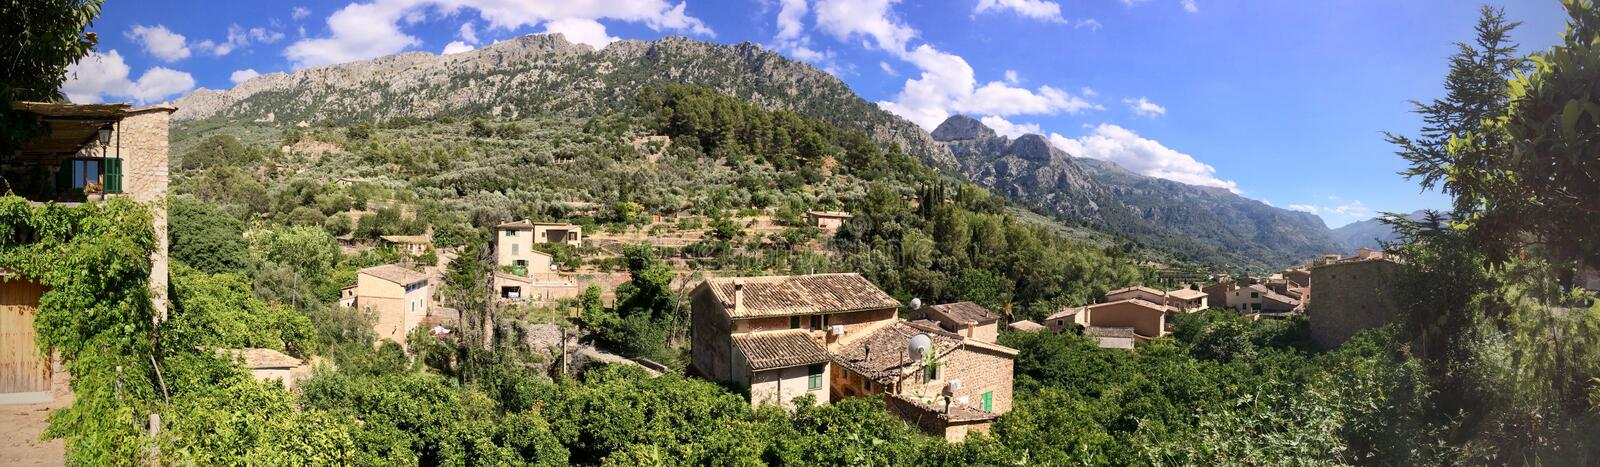 Panorama of Fornalutx rooftops, Mallorca, Spain stock photos